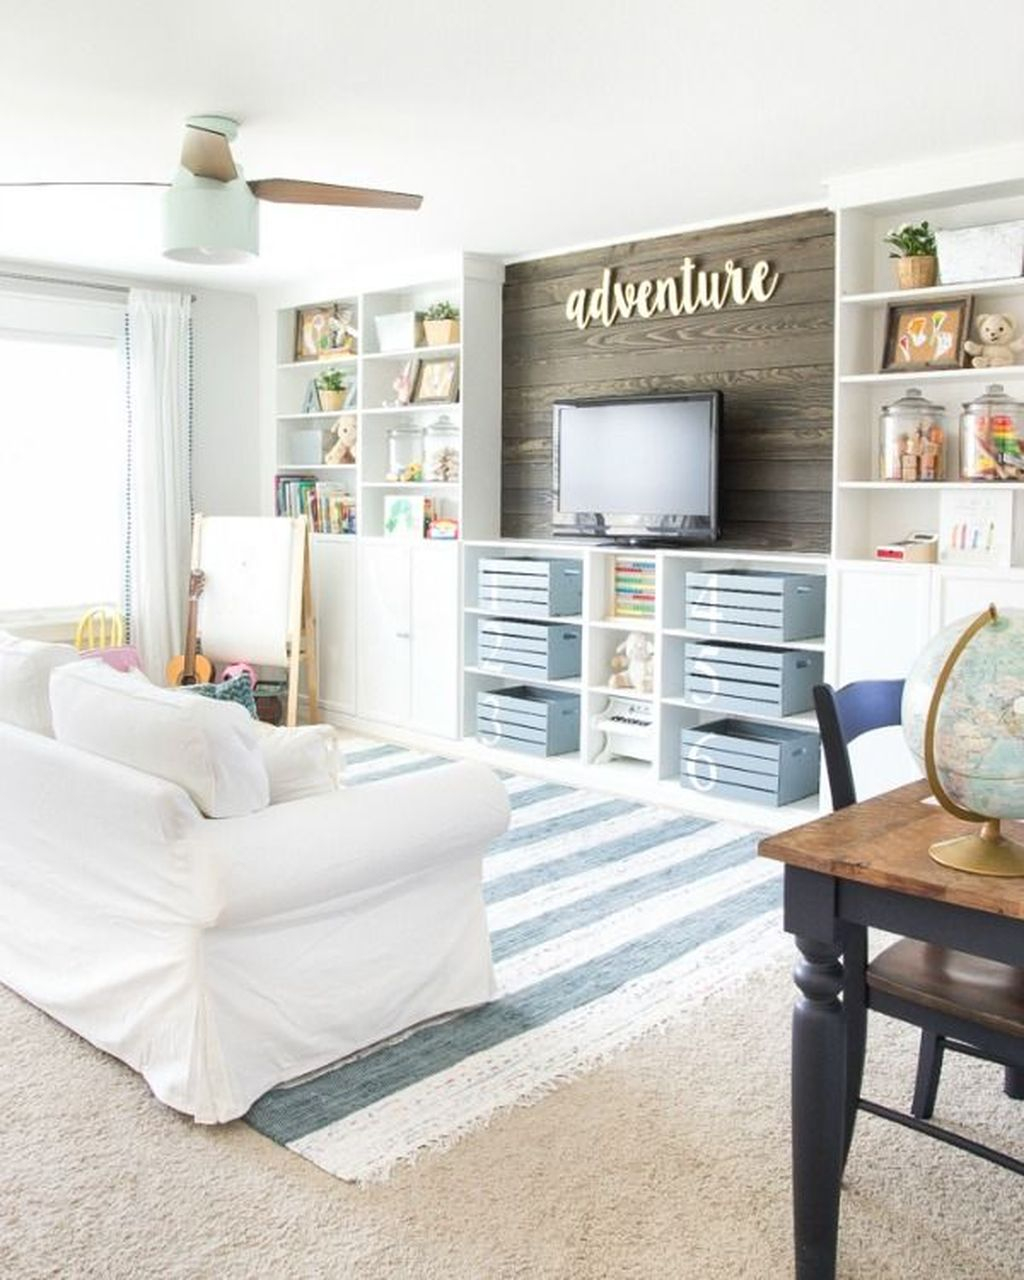 Inexpensive Home Cabinet Design Ideas For Cozy Family Room On A Budget 36